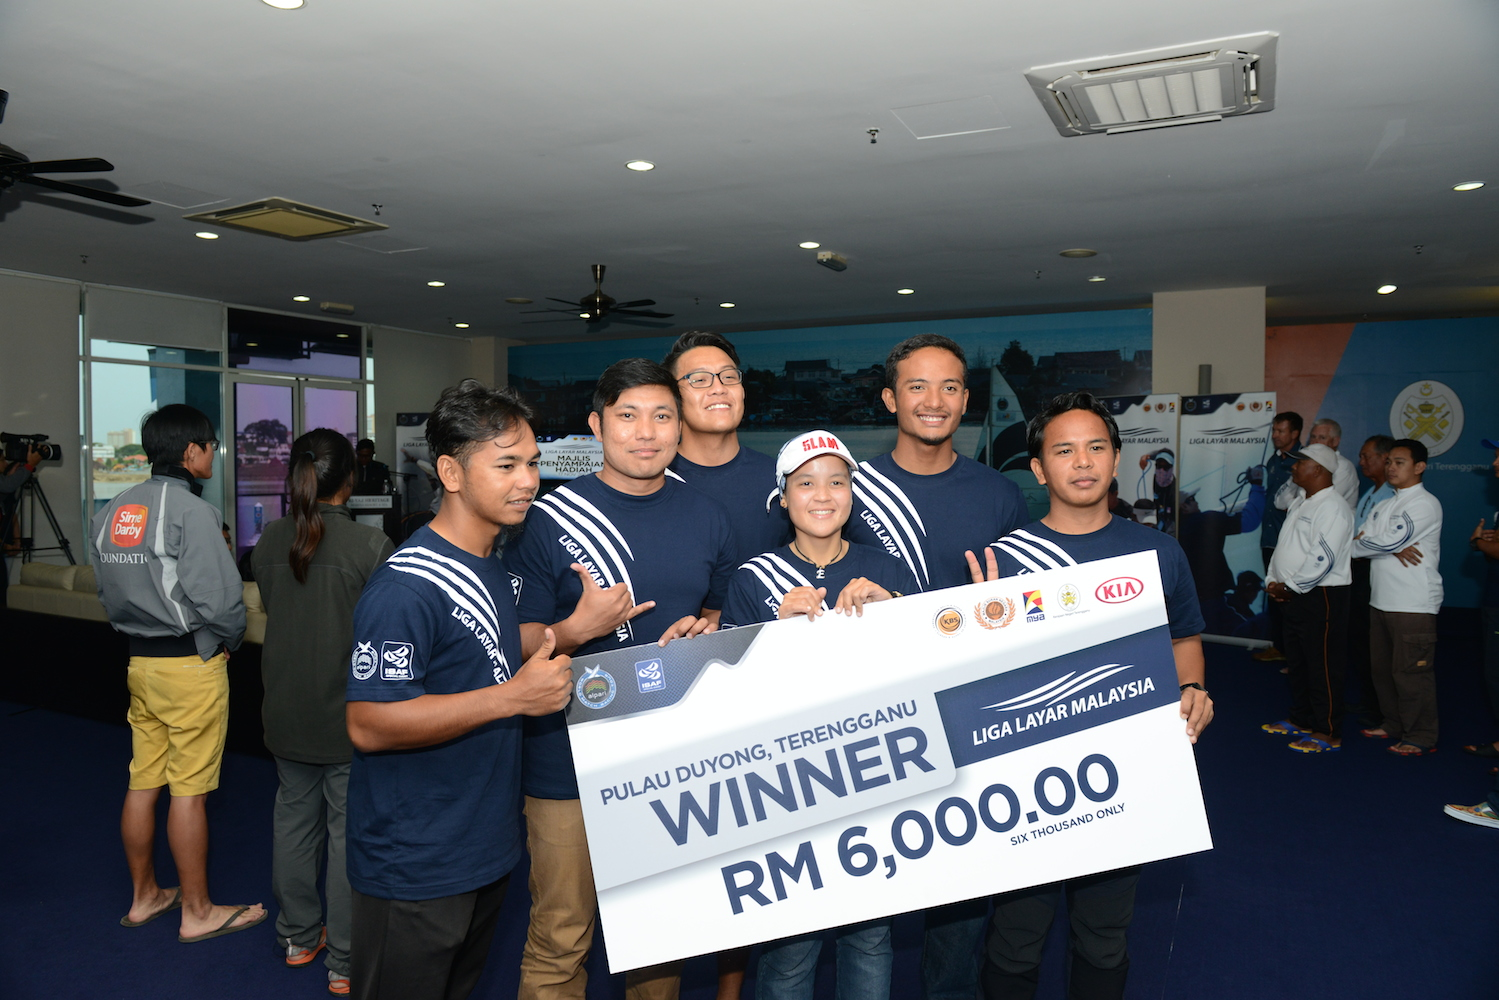 Nurul Elia Anuar and her crew members were all smiles after winning the grand prize of RM6,000.